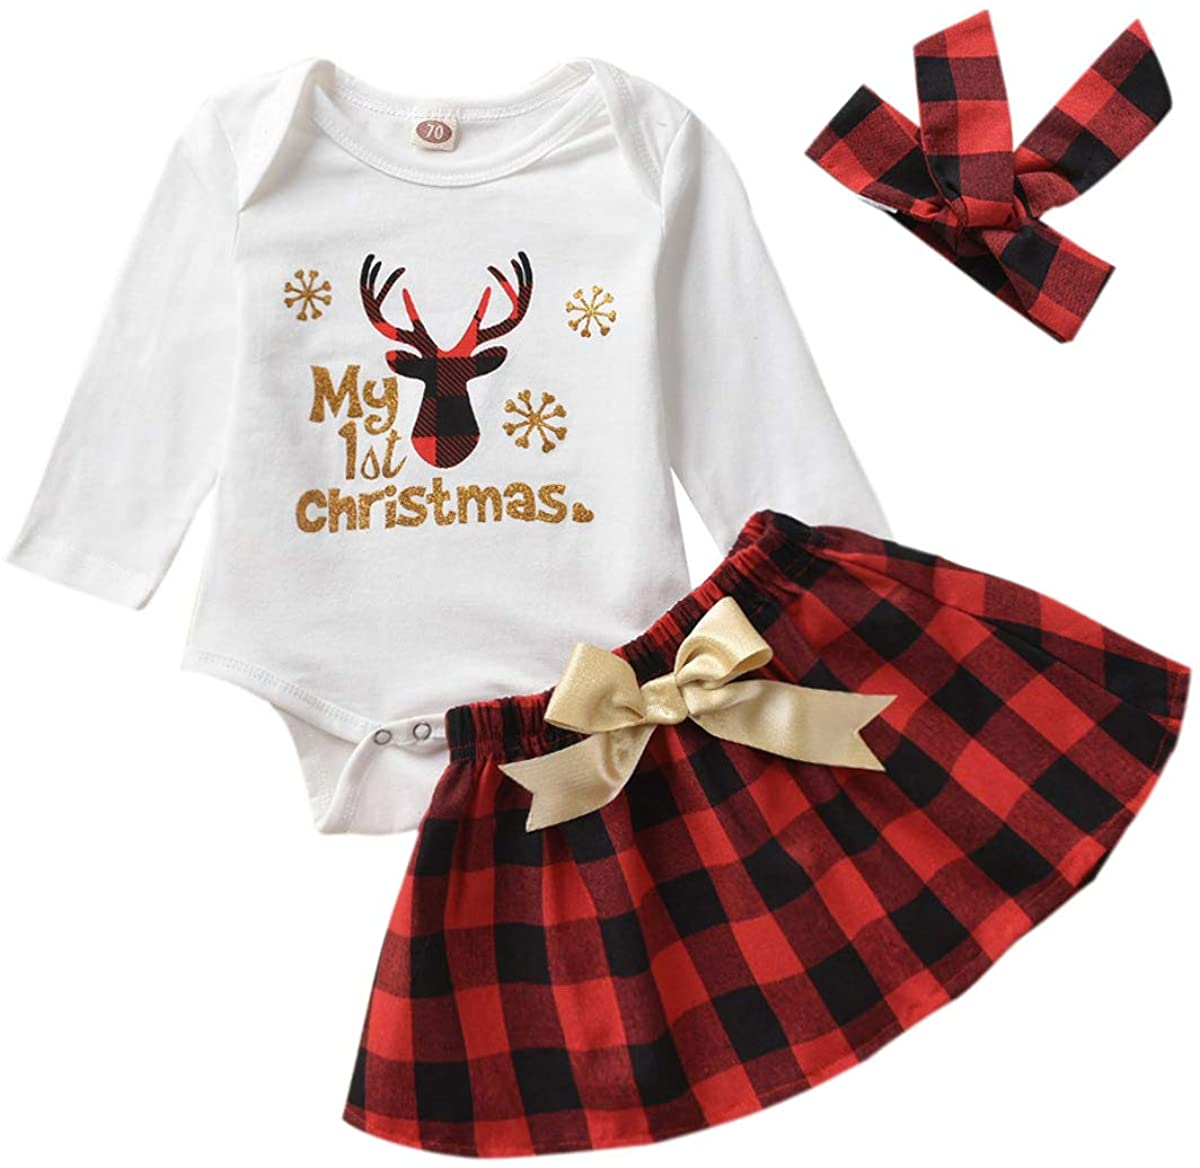 Christmas Dresses Outfits Newborn Baby Girls Santa Bell Sleeve Rompers+Snowflake Plaid Tutu Skirt Fall Clothes